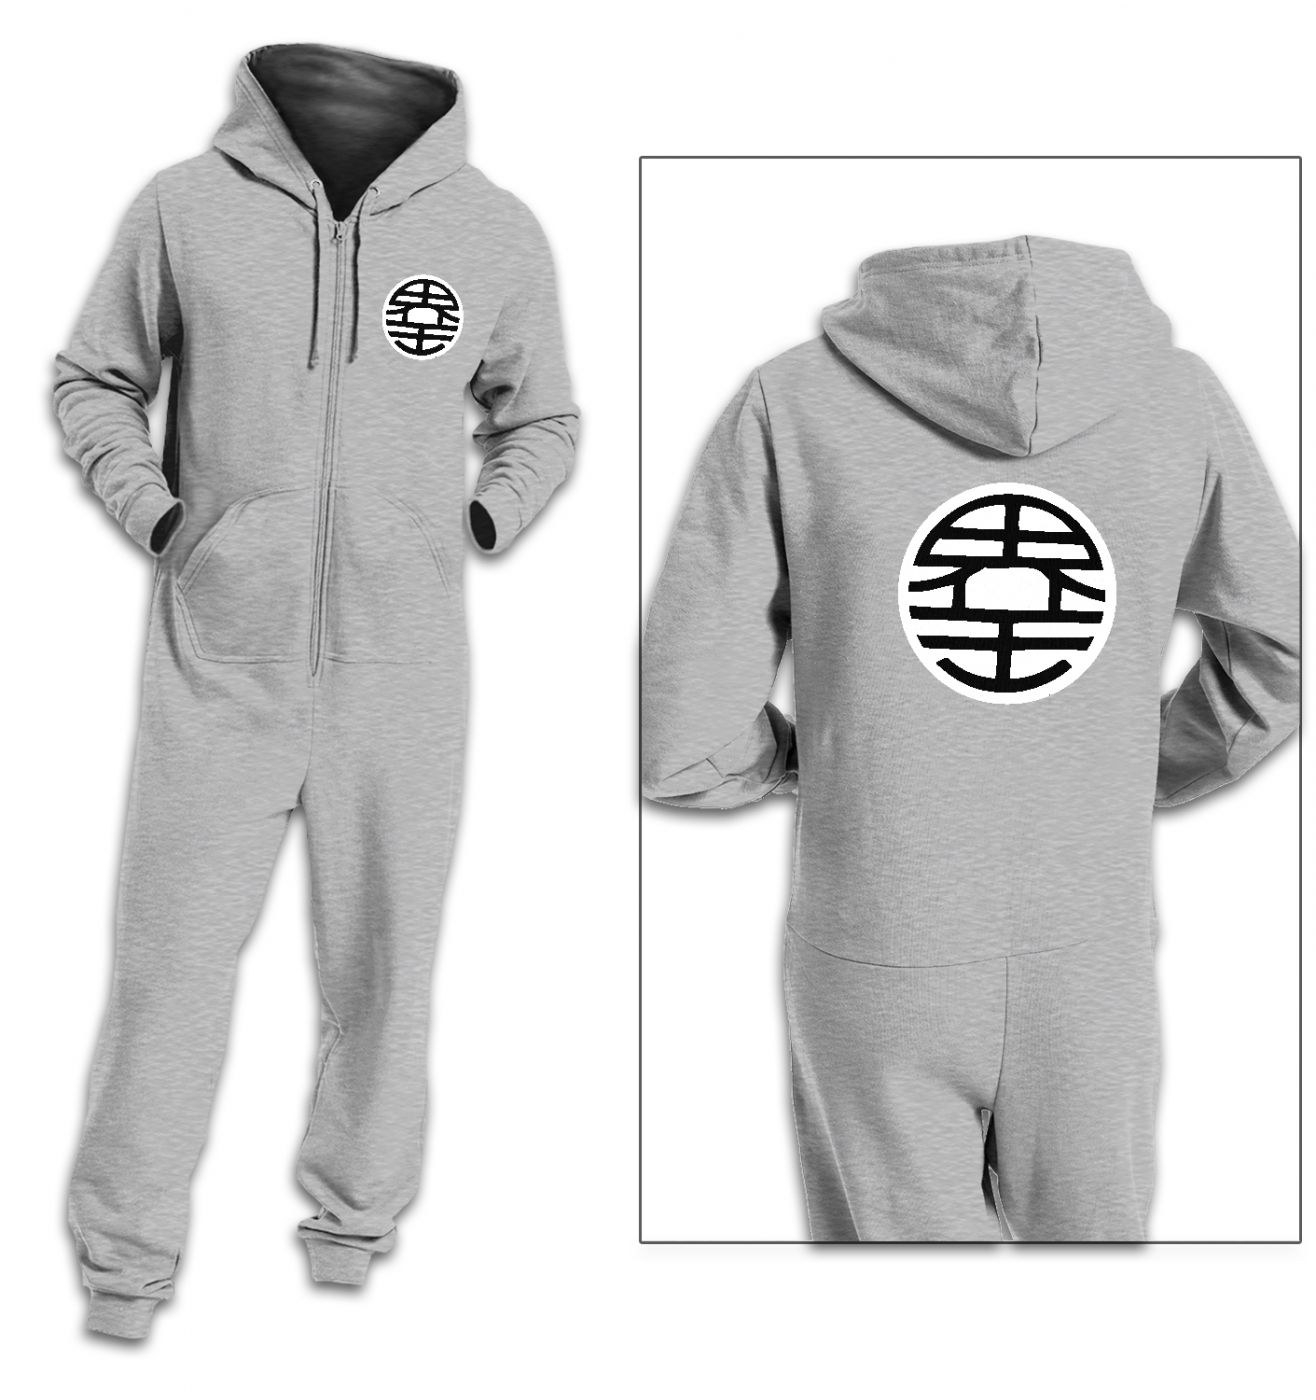 King Kai adult onesie